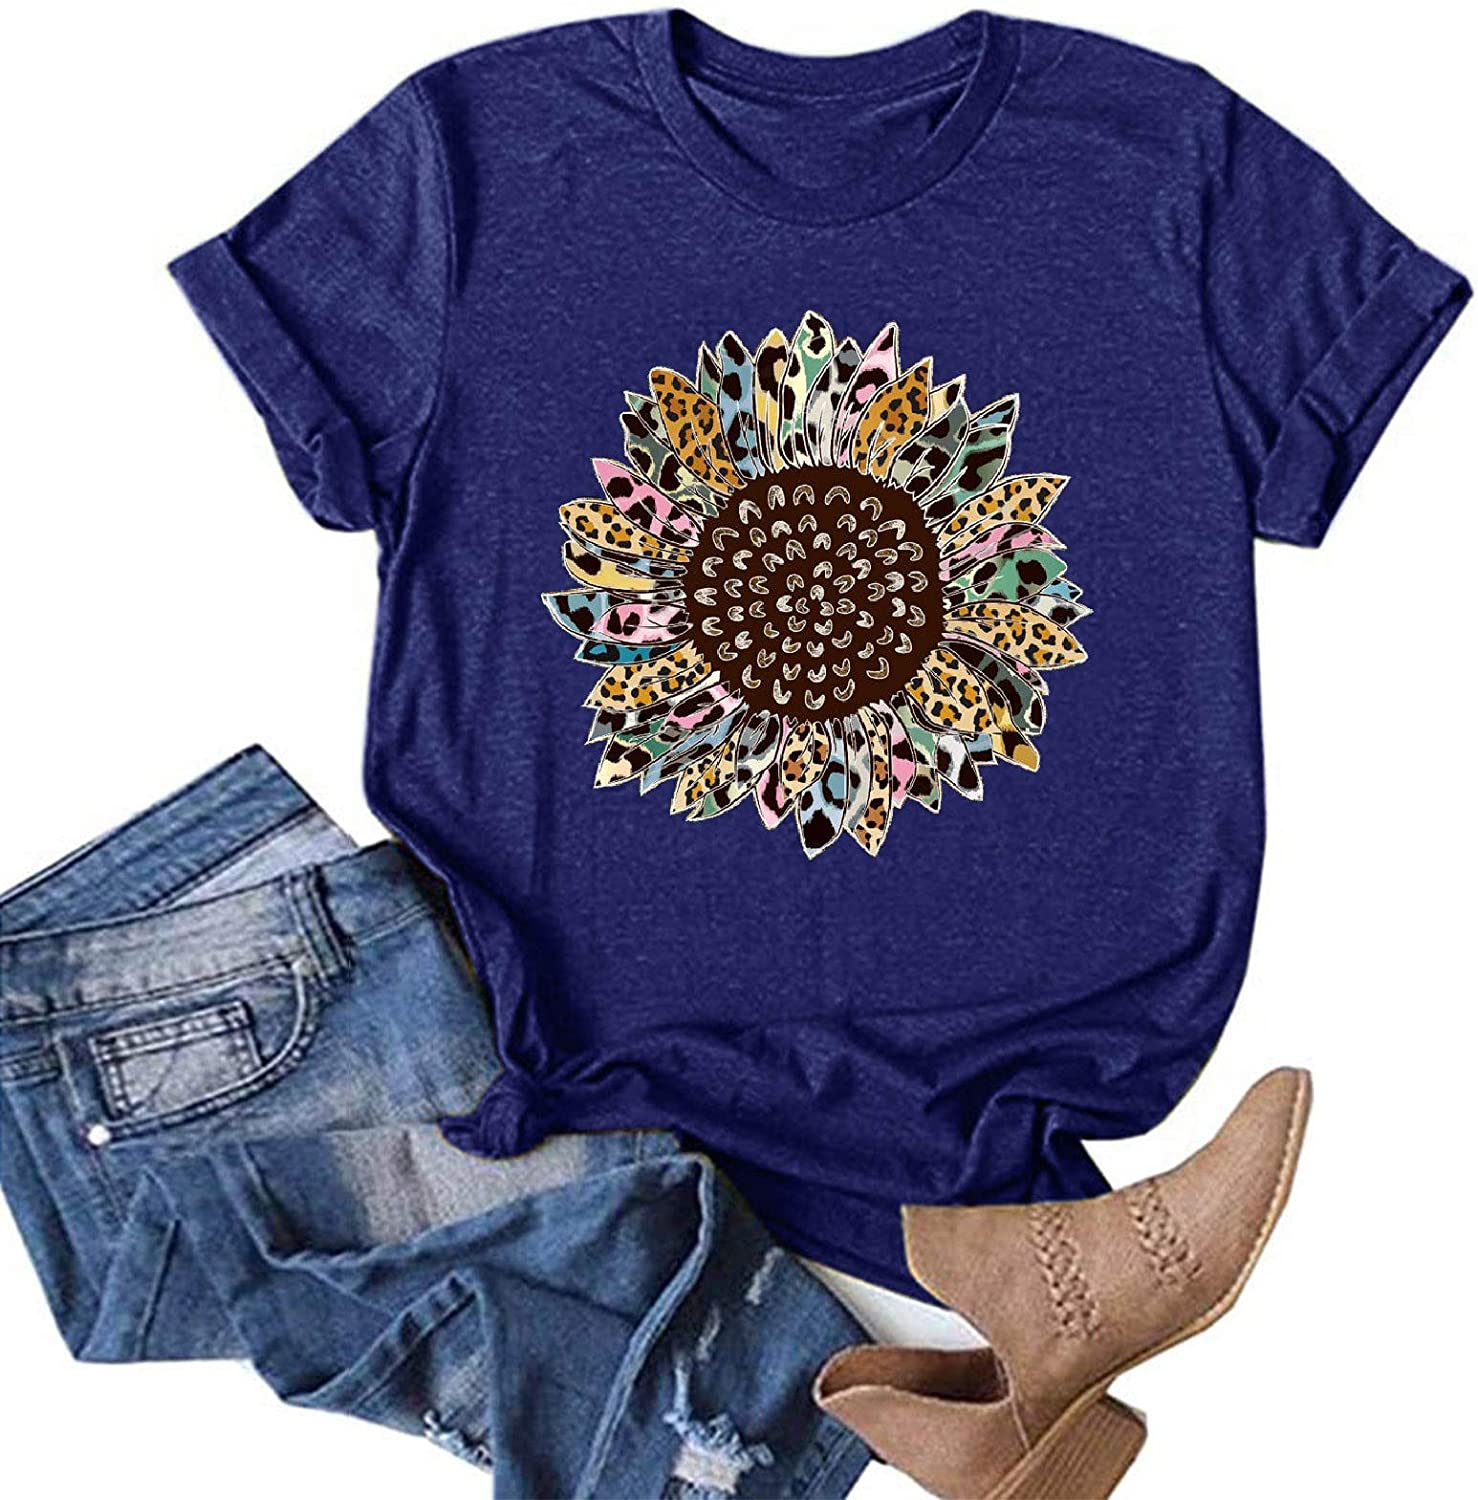 AOKASII Shirts for Women, Fashion Round Neck Letter Print Casual Tee Shirt Funny Plus Size Short Sleeve T-Shirt Top Blouses